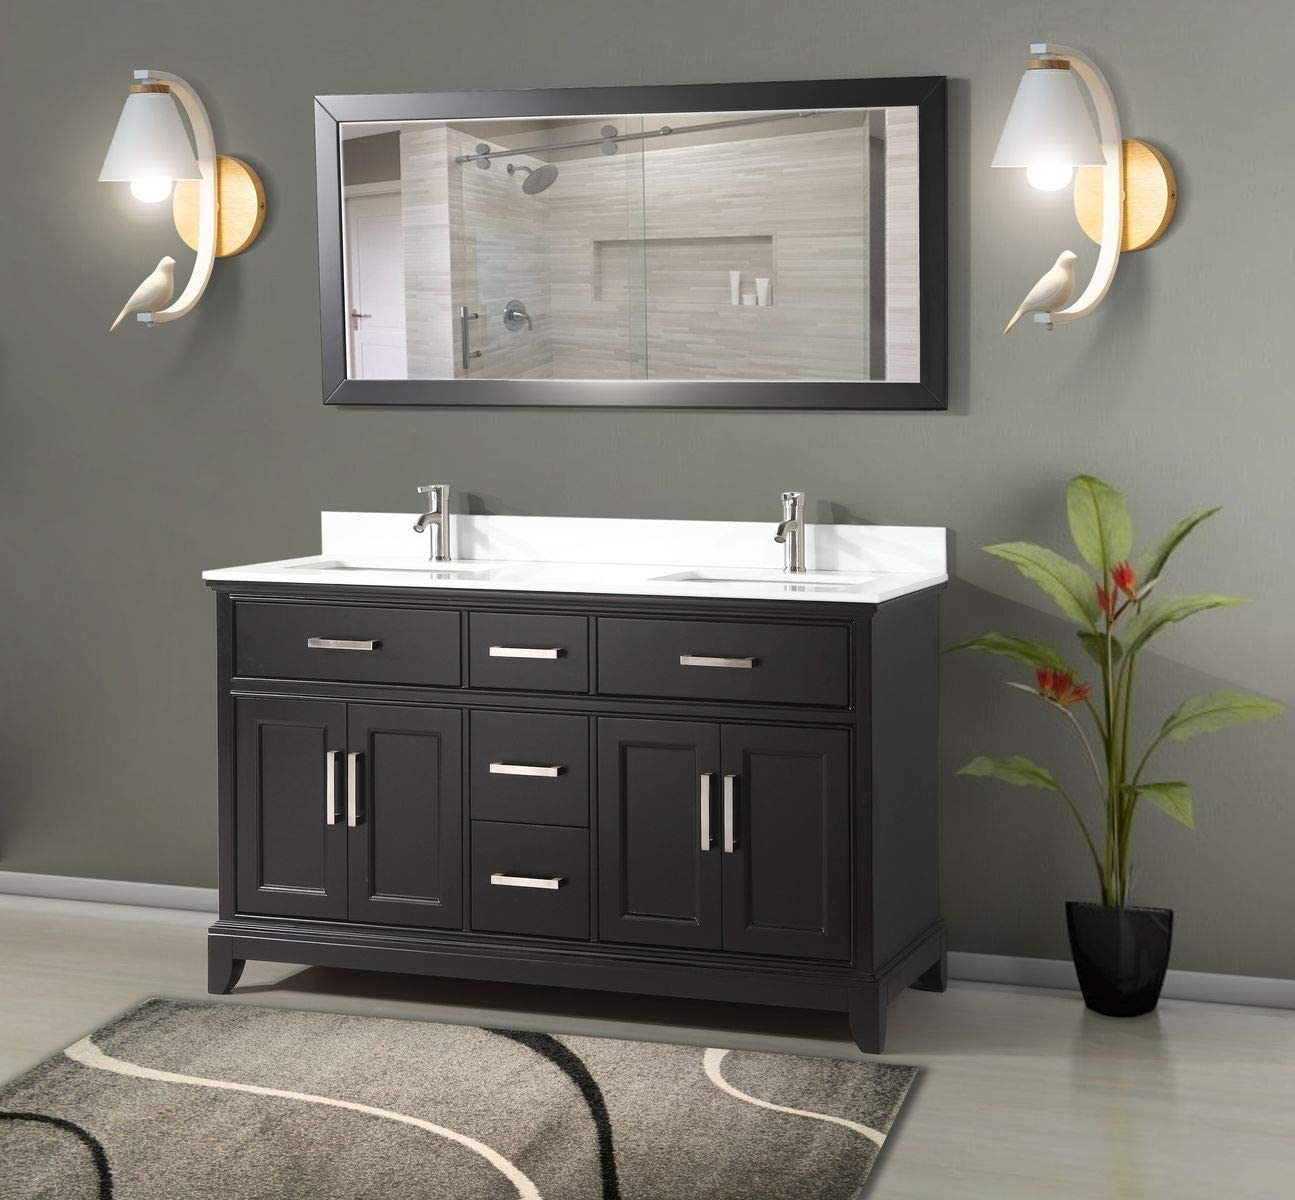 Buy Vanity Art 60 Inches Double Sink Bathroom Vanity Set White Super Phoenix Stone Top 5 Dove Tailed Drawers 2 Shelves Undermount Rectangle Sink Cabinet With Free Mirrors Va1060 De Online In Indonesia B01ipyxmg6